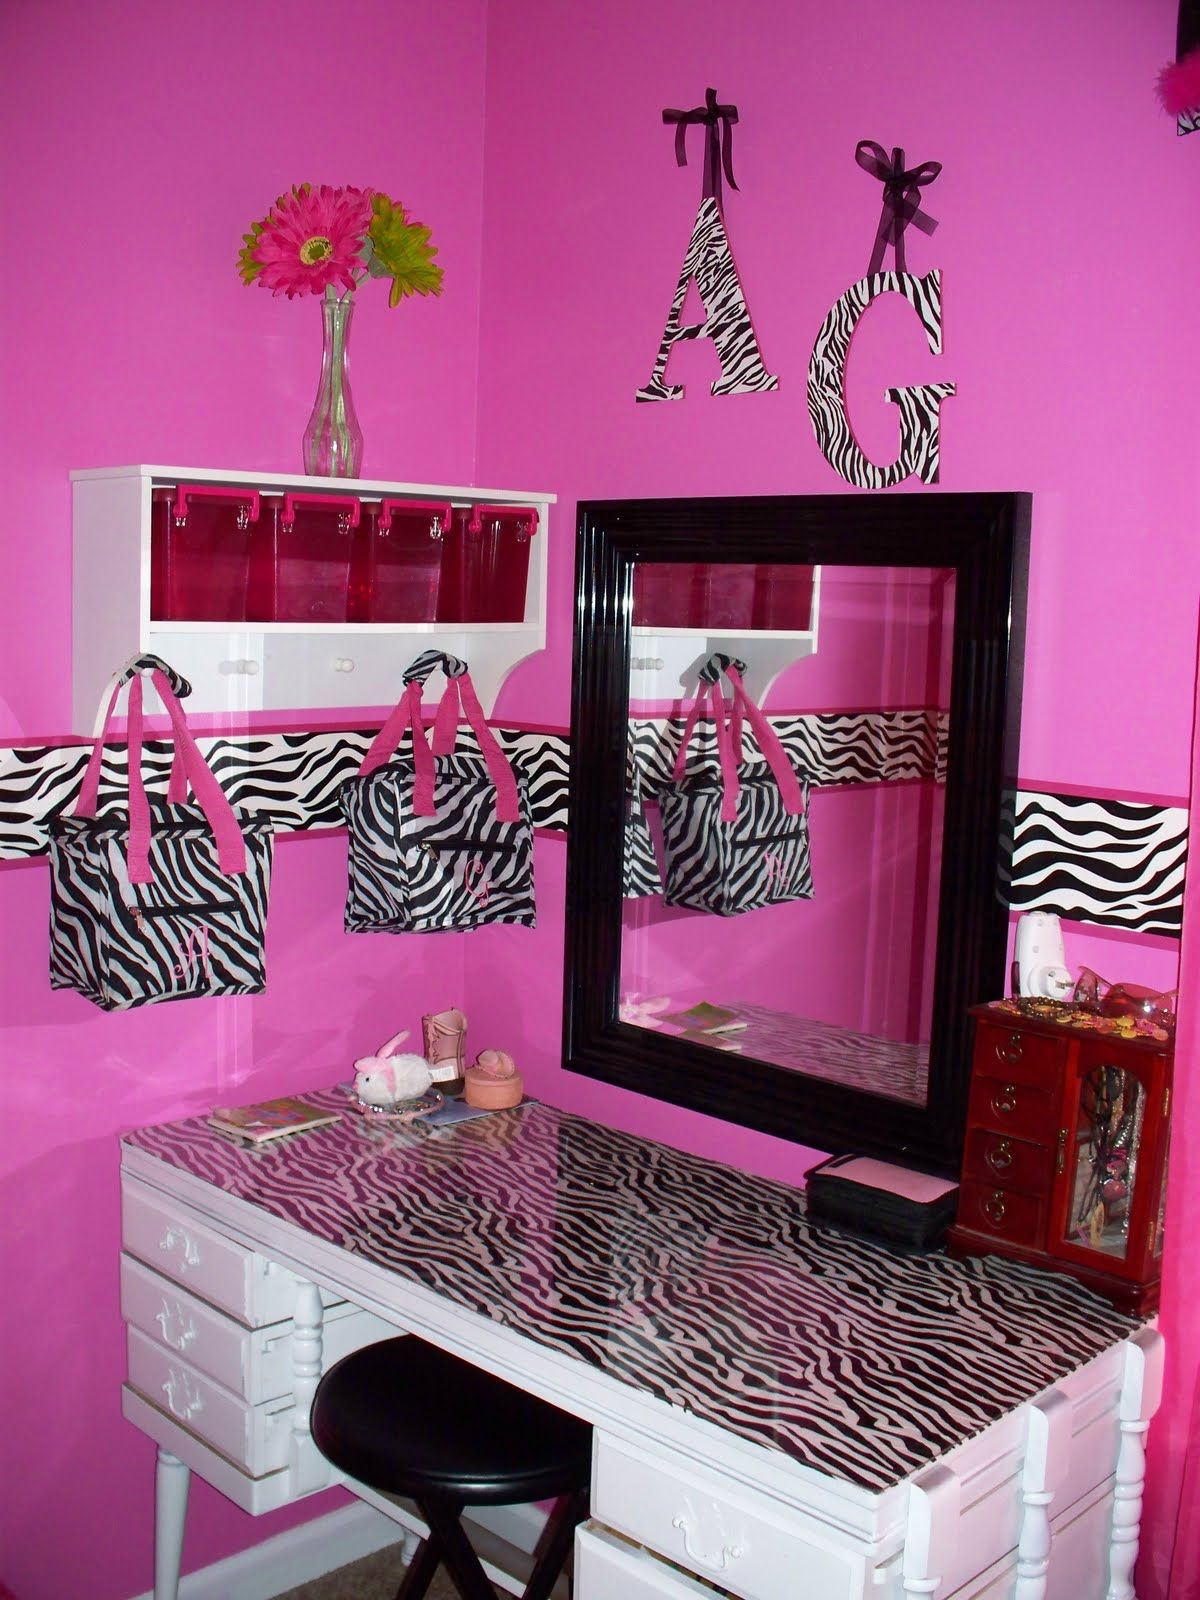 Pink bedroom decoration - Mommy Lou Who Hot Pink Zebra Room Zebra Print Bedroom Curtains Children S